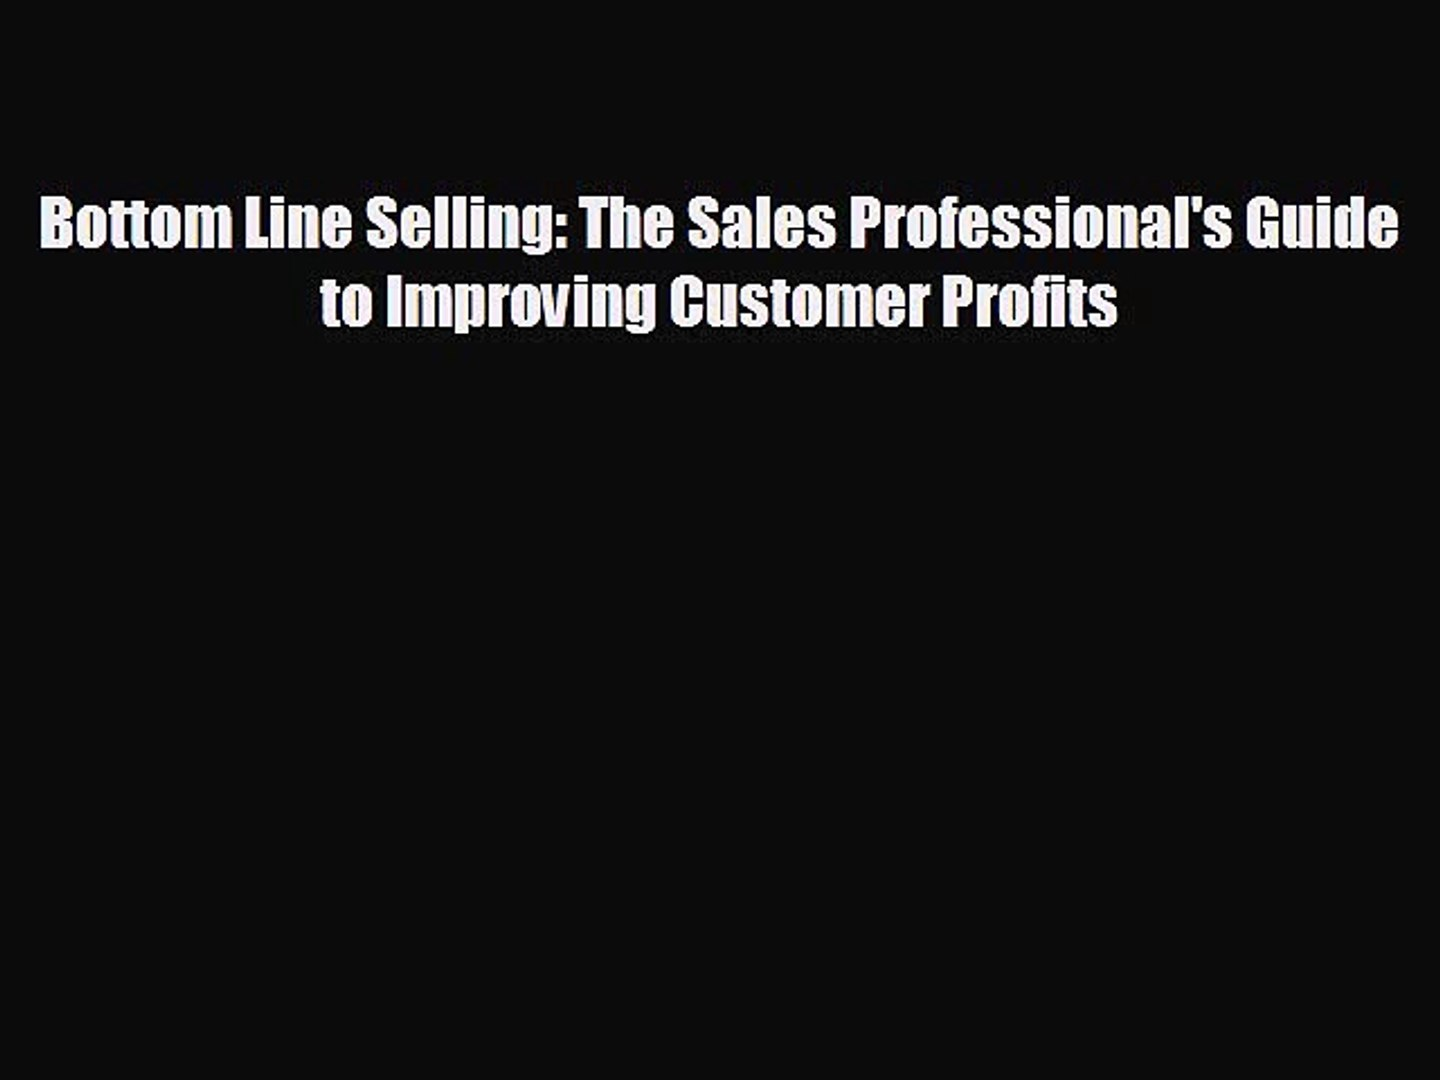 Enjoyed read Bottom Line Selling: The Sales Professional's Guide to Improving Customer Profits